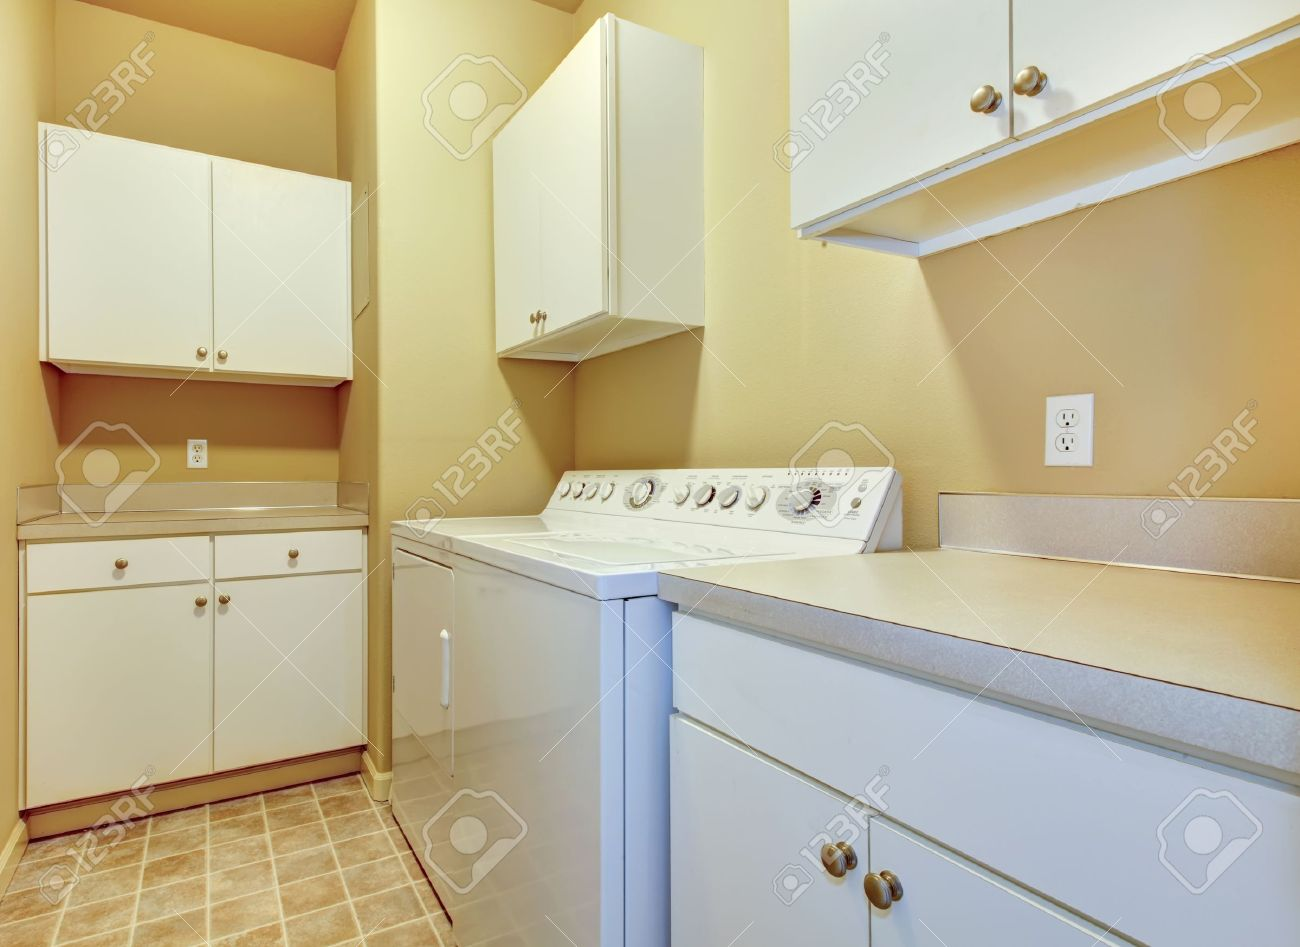 Fabulous Simple Laundry Room With Beige Walls And White Cabinets Interior Design Ideas Gentotryabchikinfo